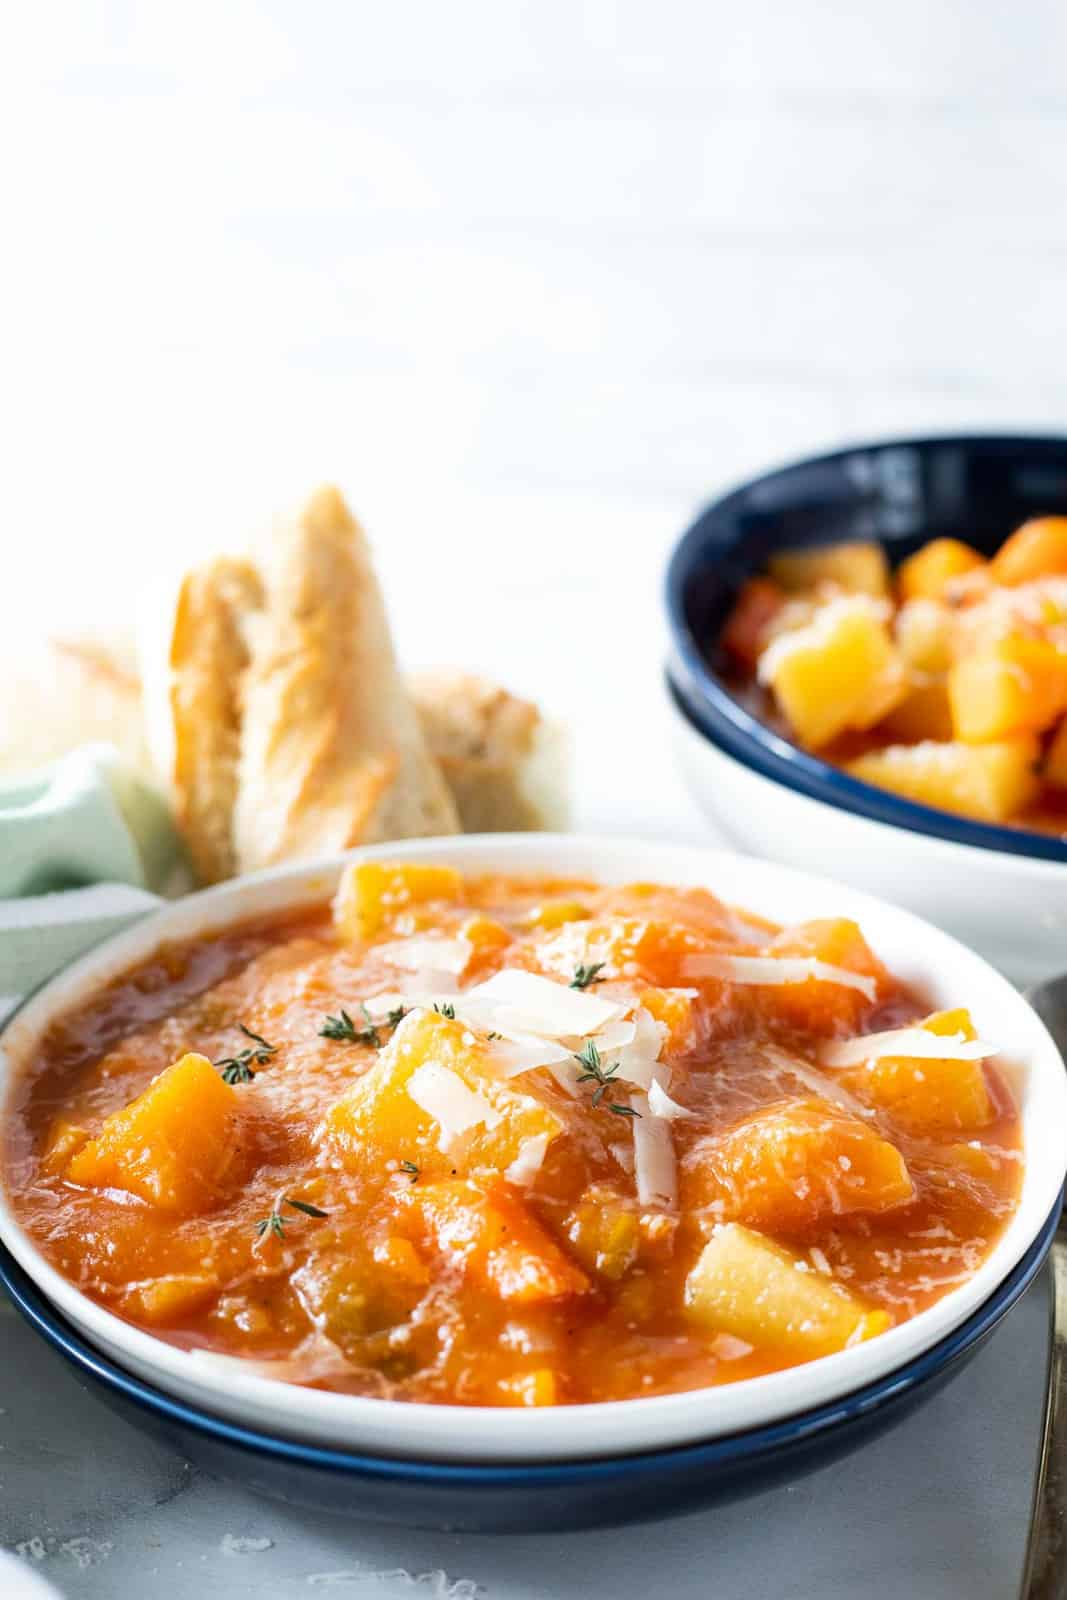 Slow cooker chunky vegetable soup in a serving bowl.